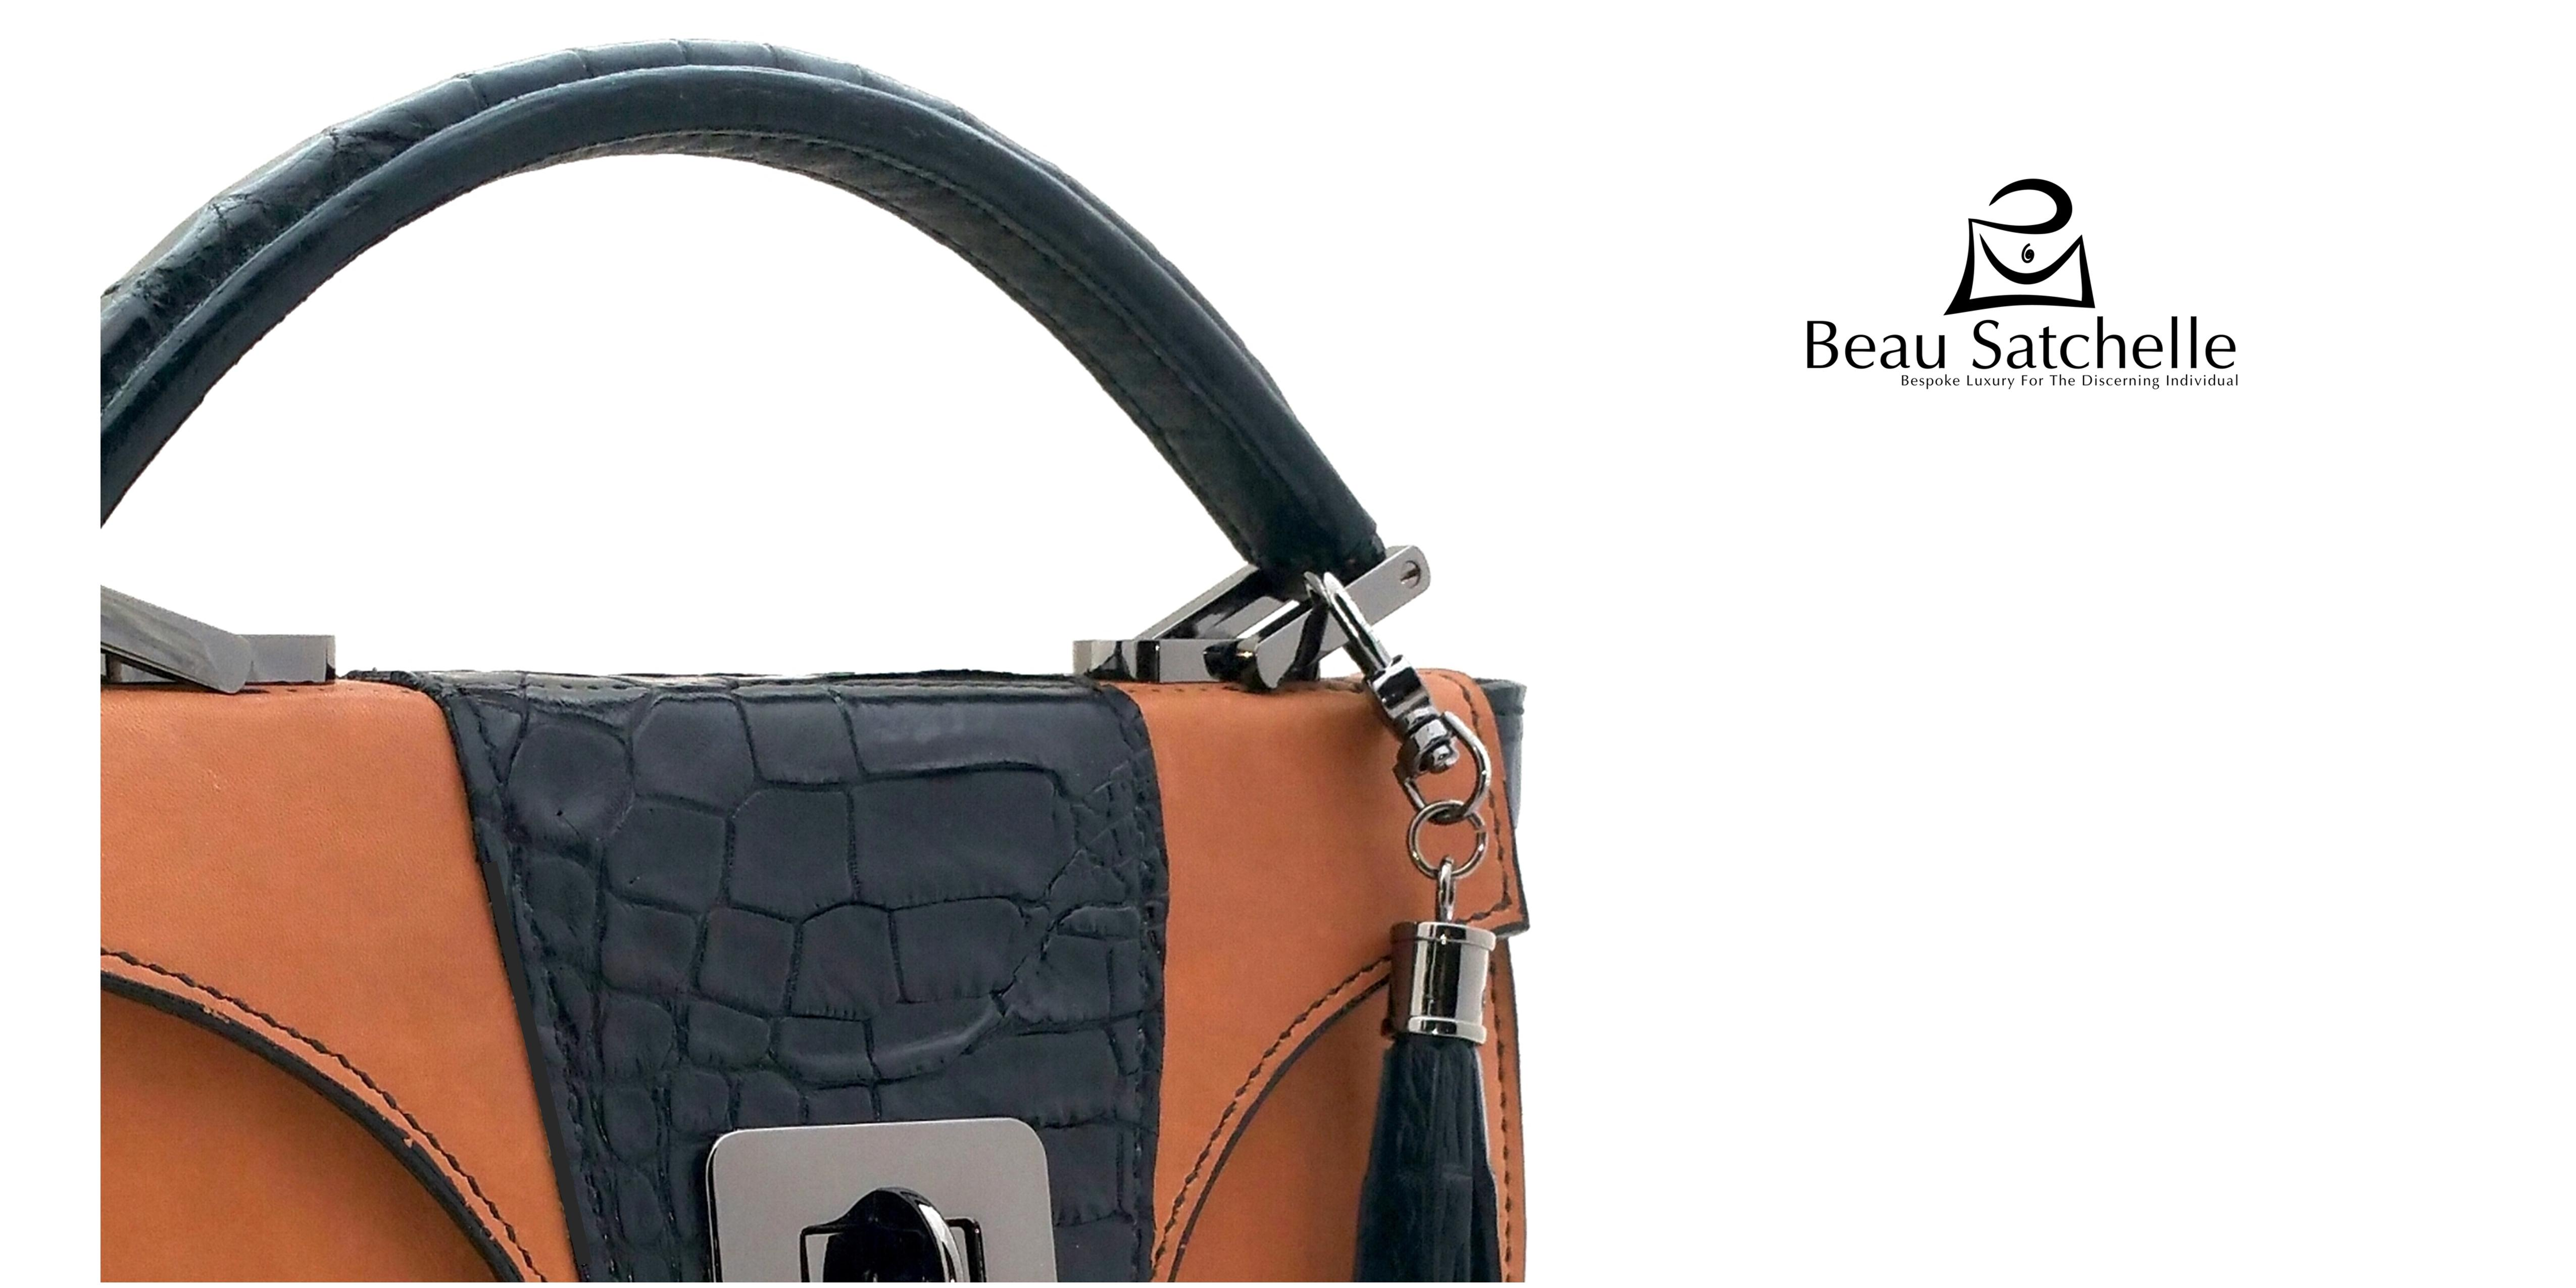 New Product Reveal: The Natalie Bespoke Handbag